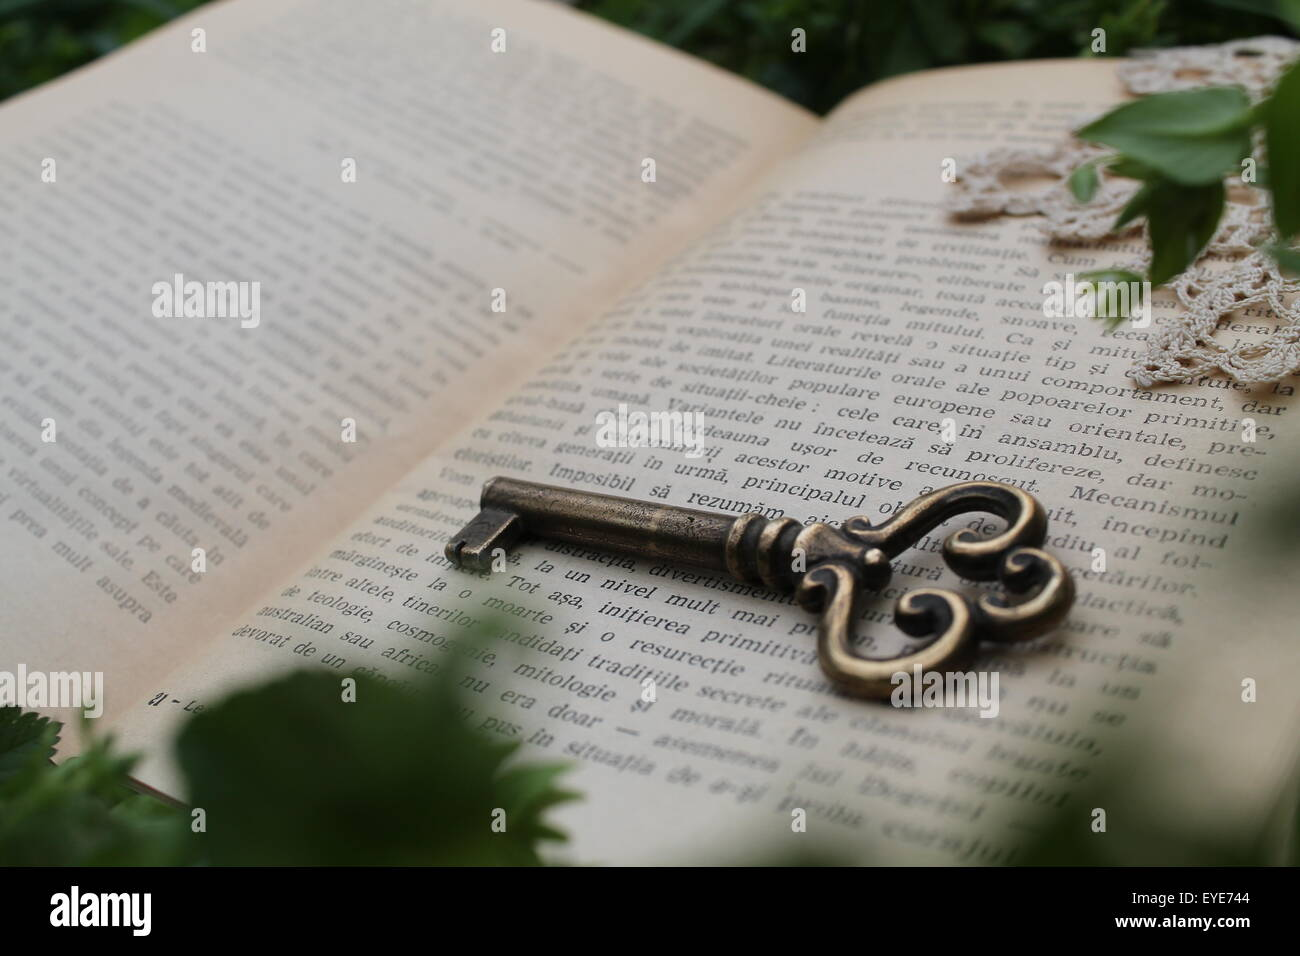 Old key on a book - Stock Image